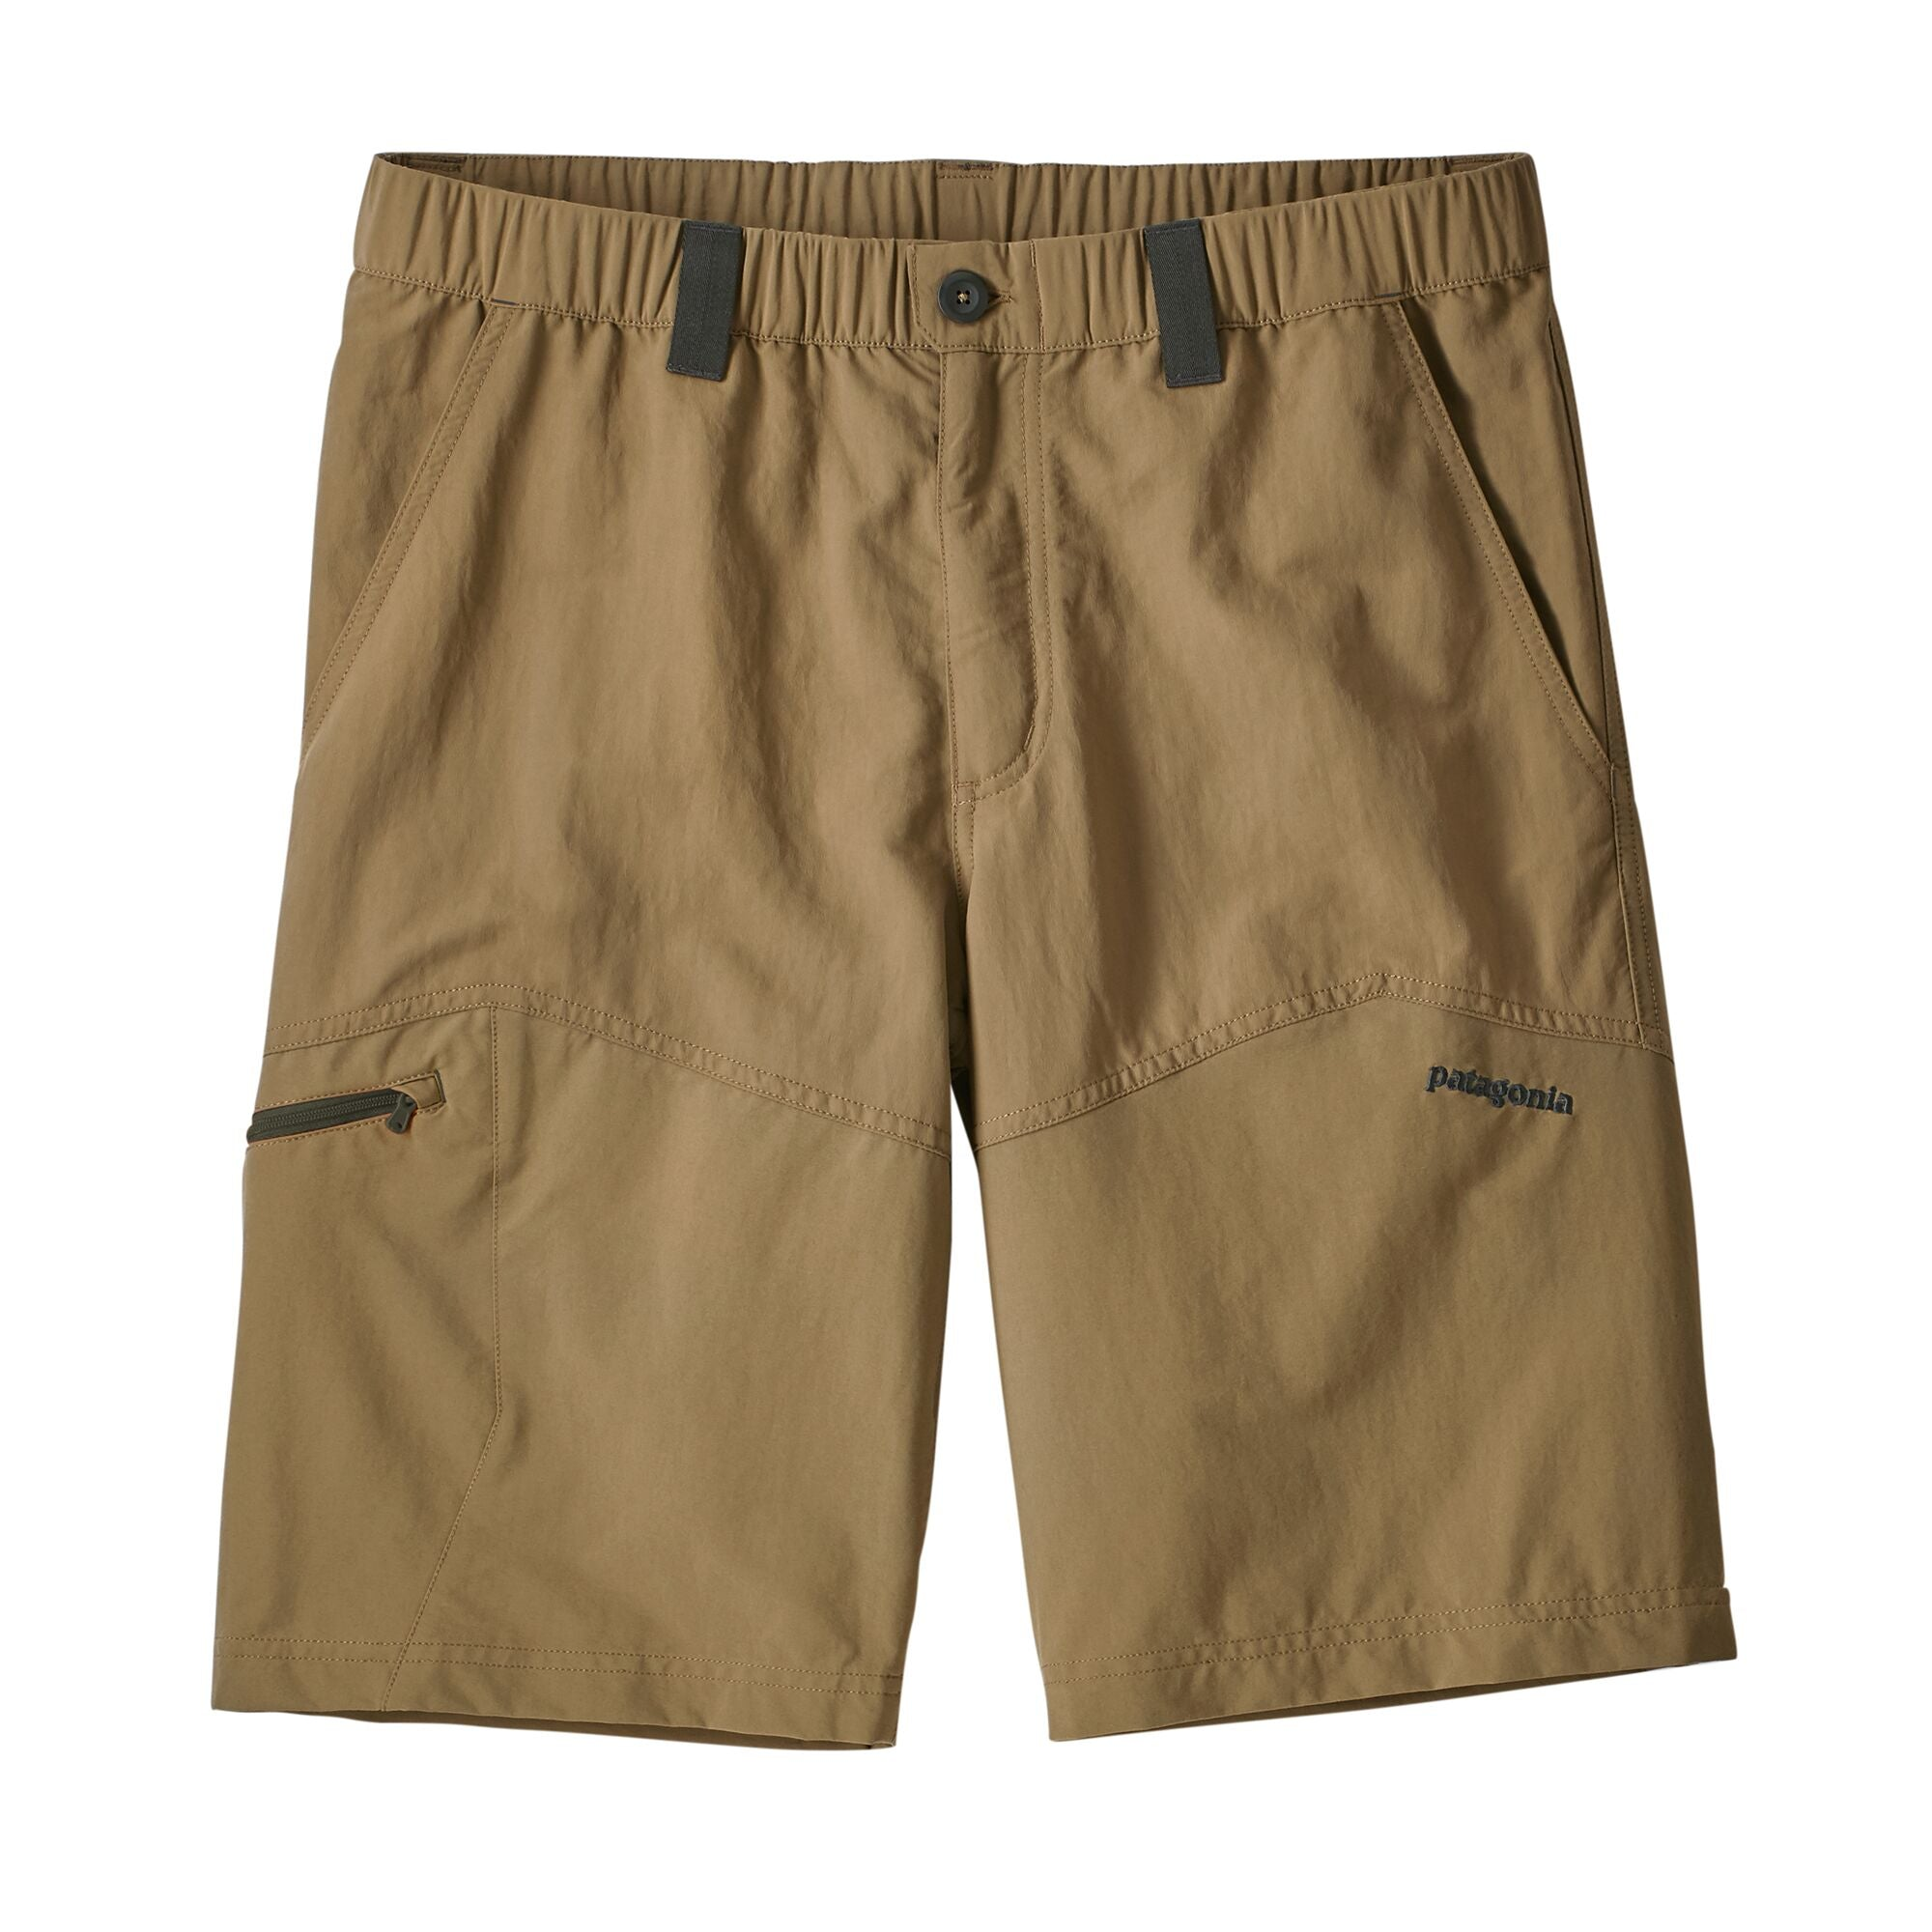 Patagonia Men's Guidewater Shorts